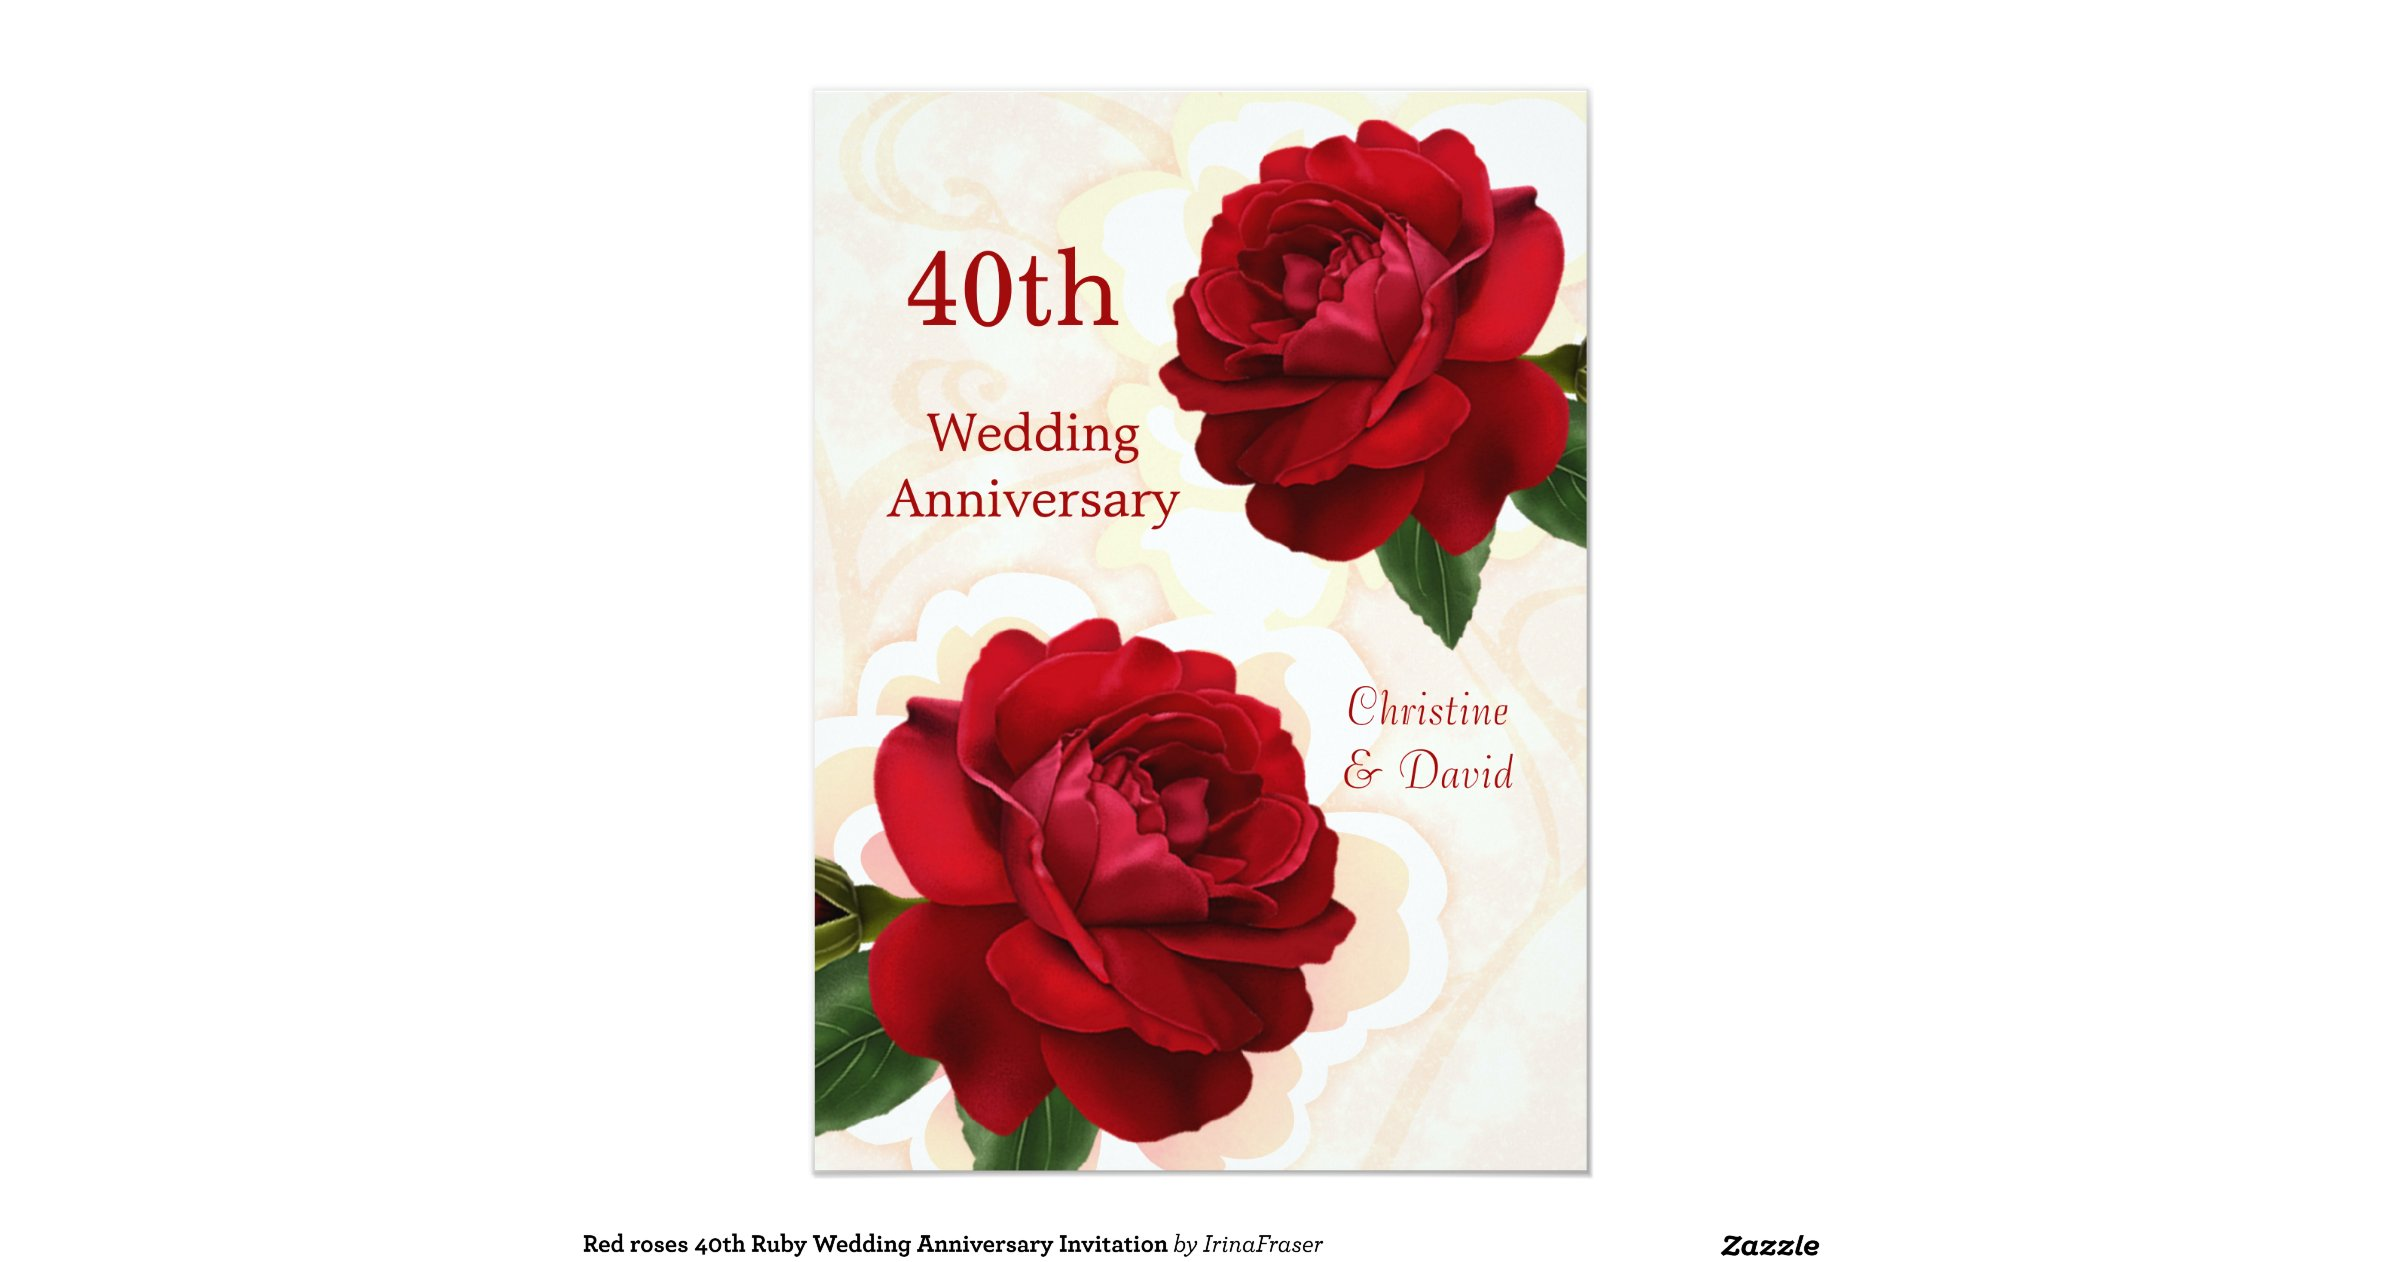 Ruby 40th Wedding Anniversary Gifts: Red_roses_40th_ruby_wedding_anniversary_invitation